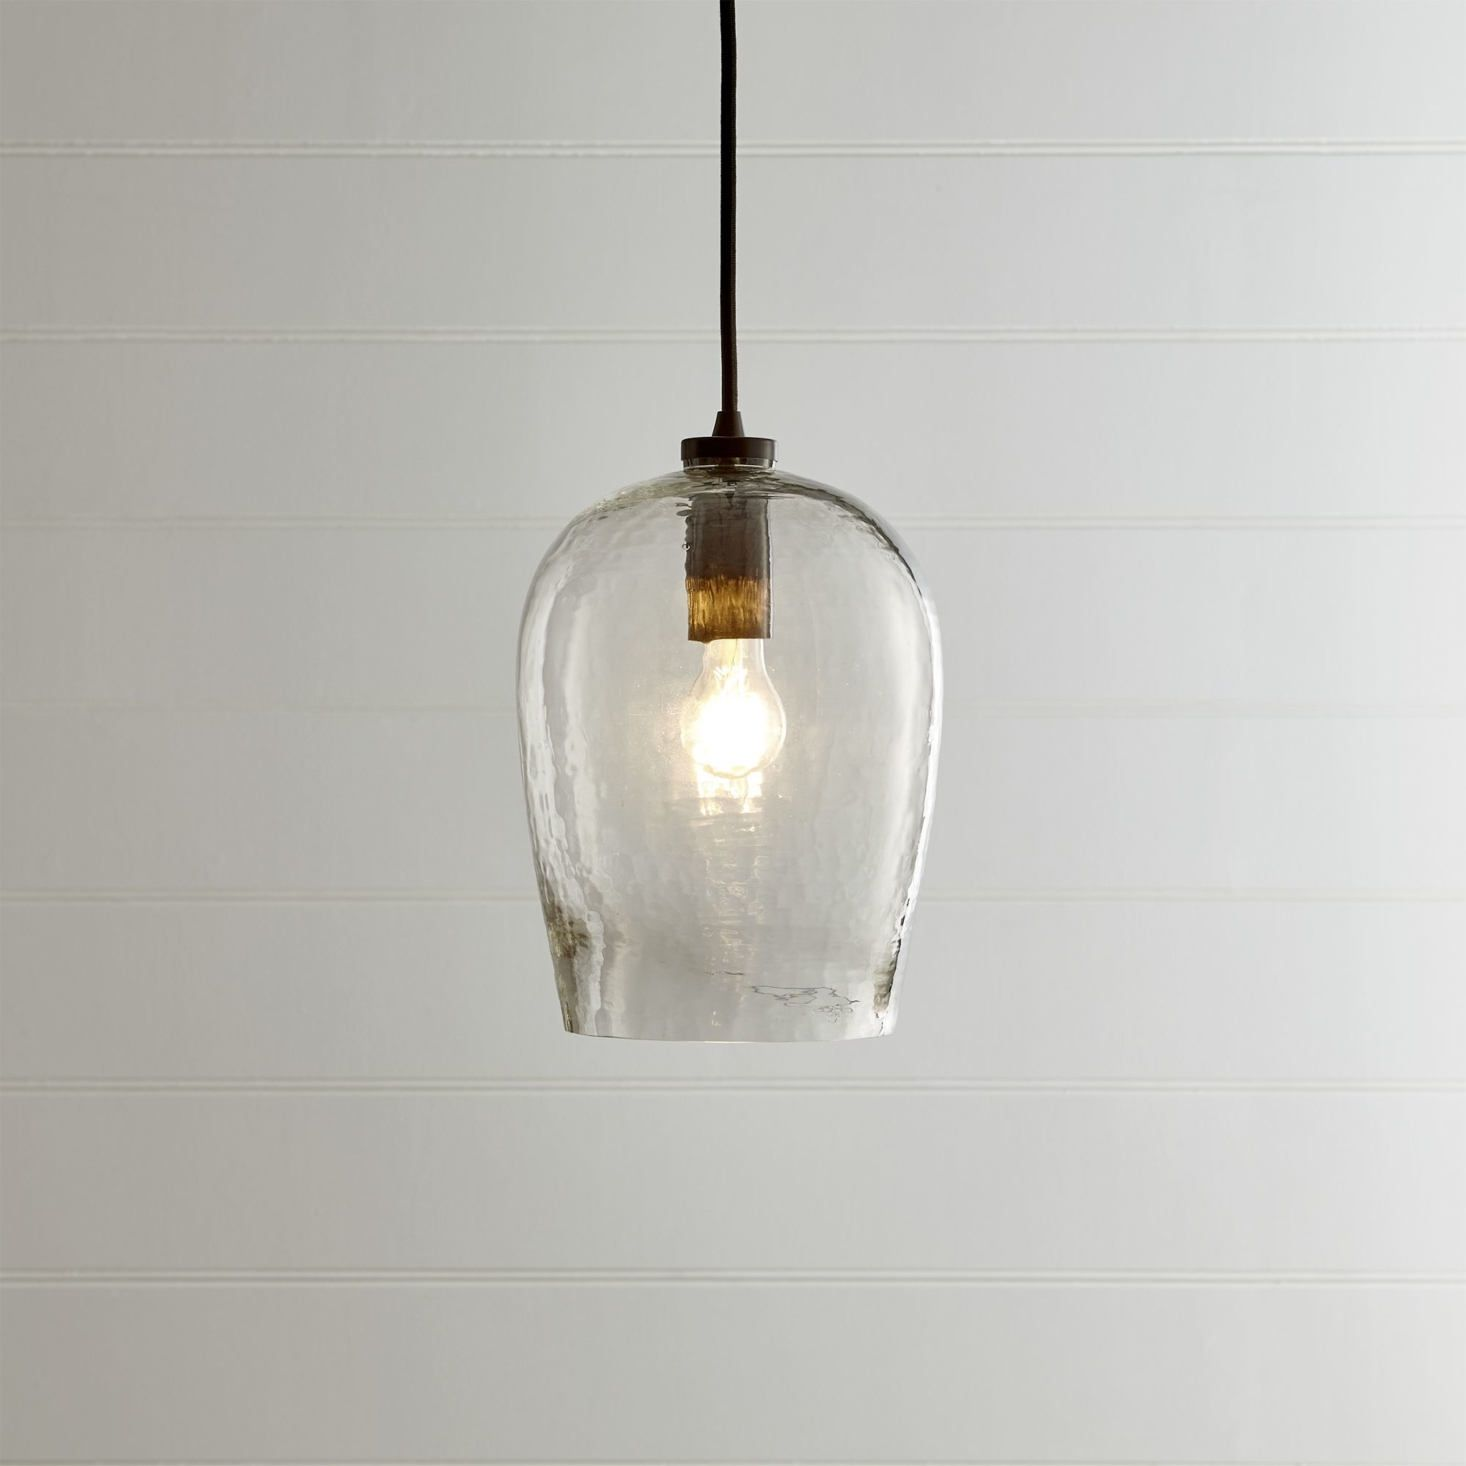 High Low Glass Bell Shaped Pendant Remodelista Glass Pendant Light Pendant Light Blown Glass Pendant Light Clear glass pendant lights